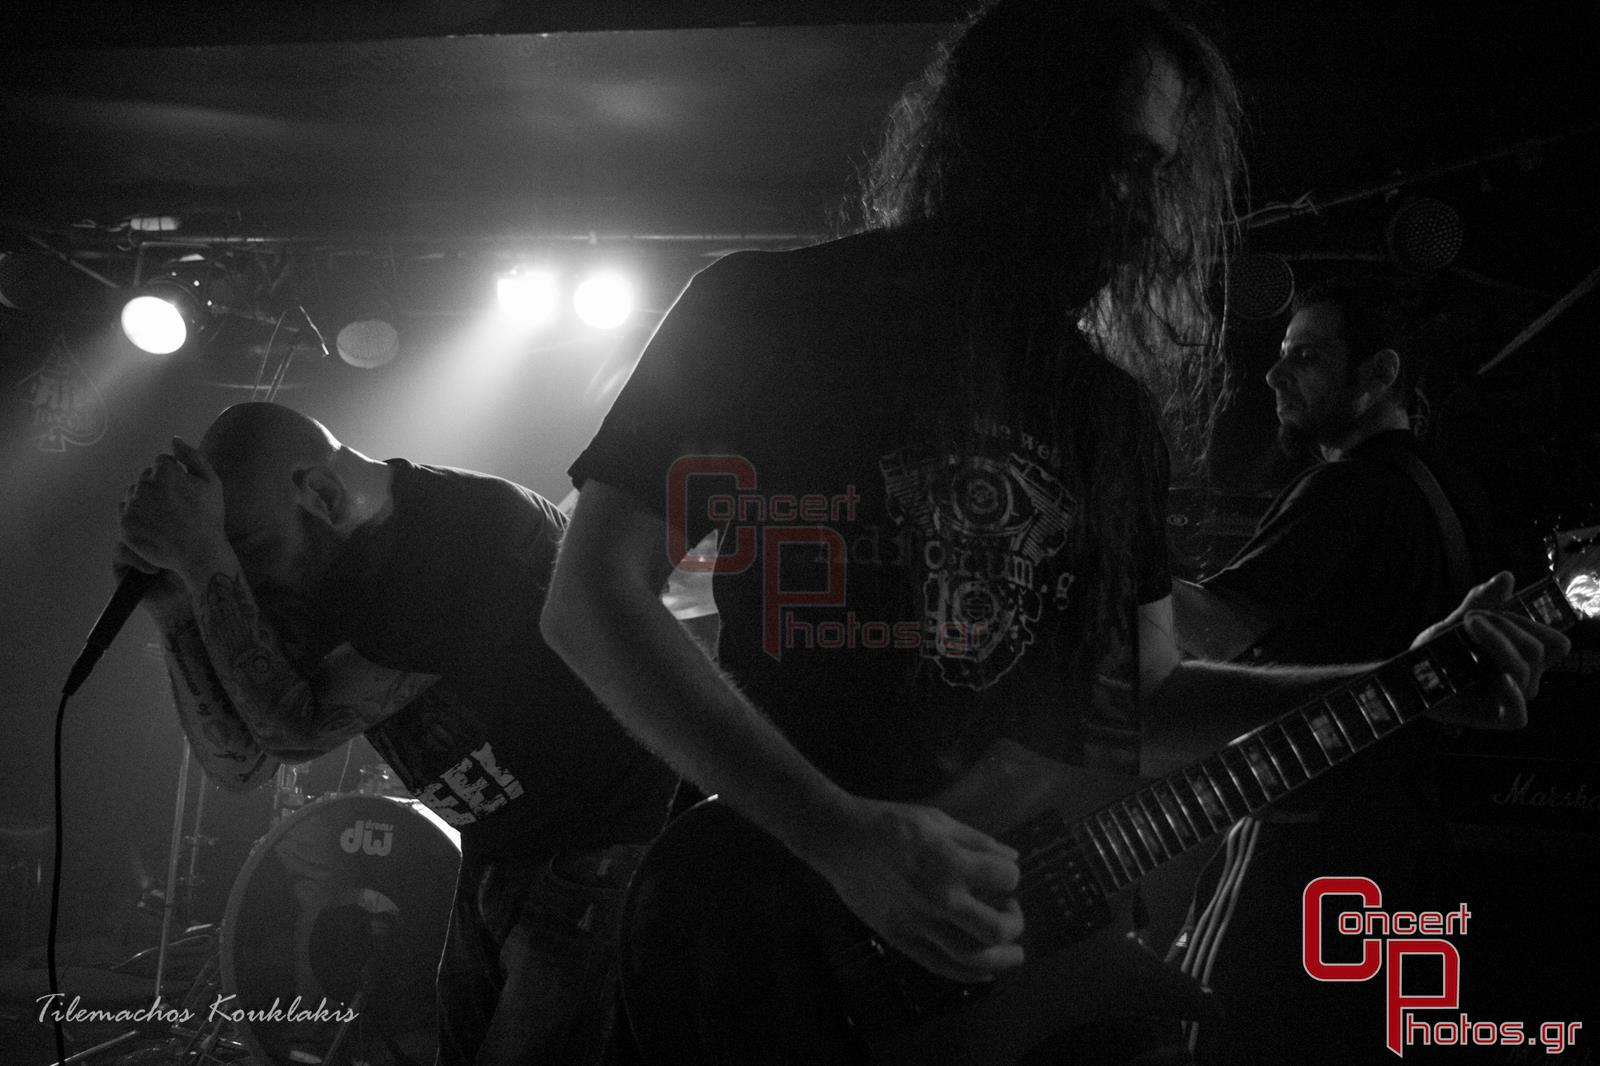 Nightstalker-Nightstalker AN Club photographer:  - concertphotos_-13